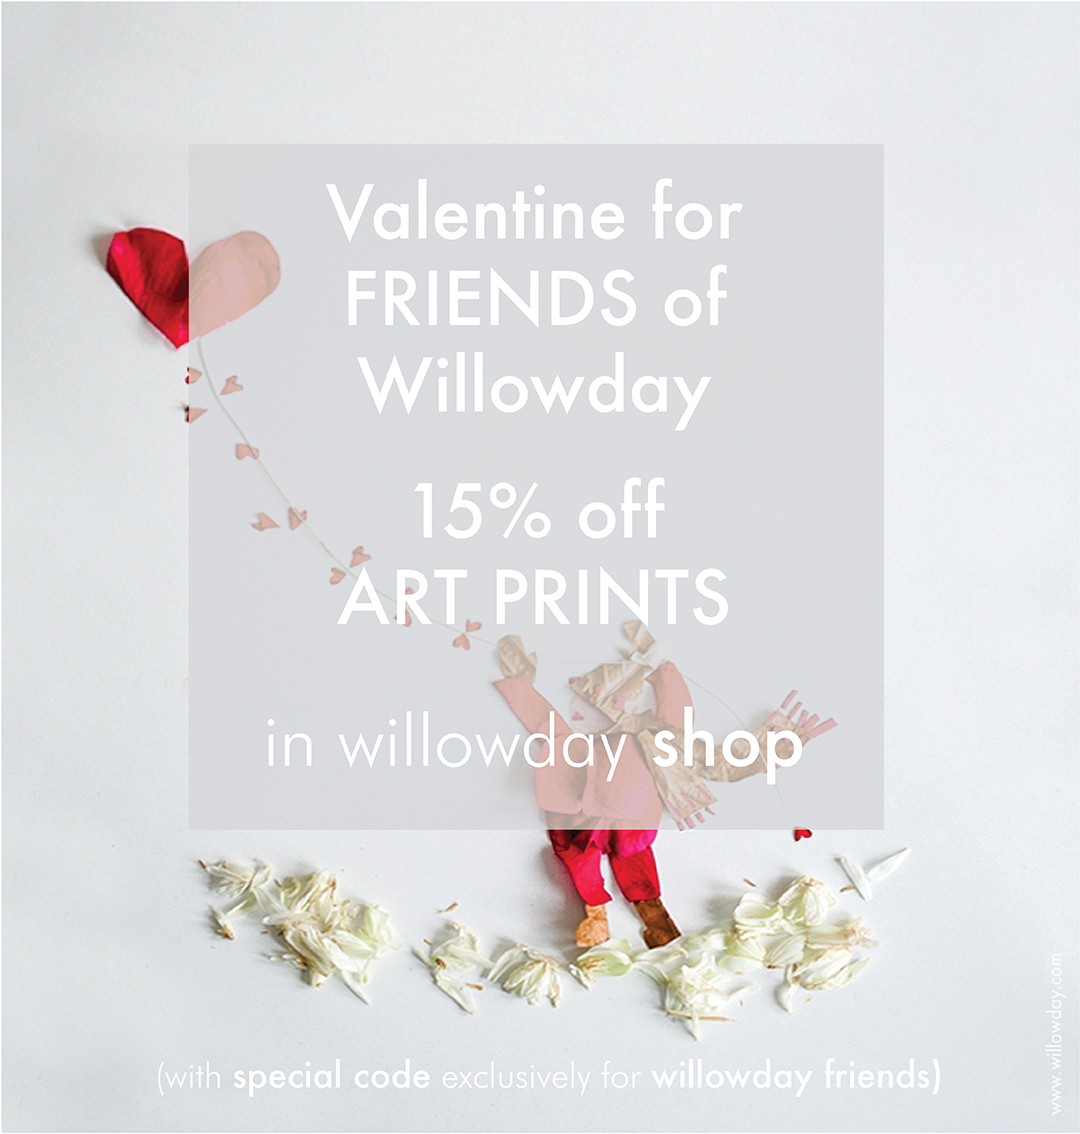 Valentine Gift for Willowday Friends